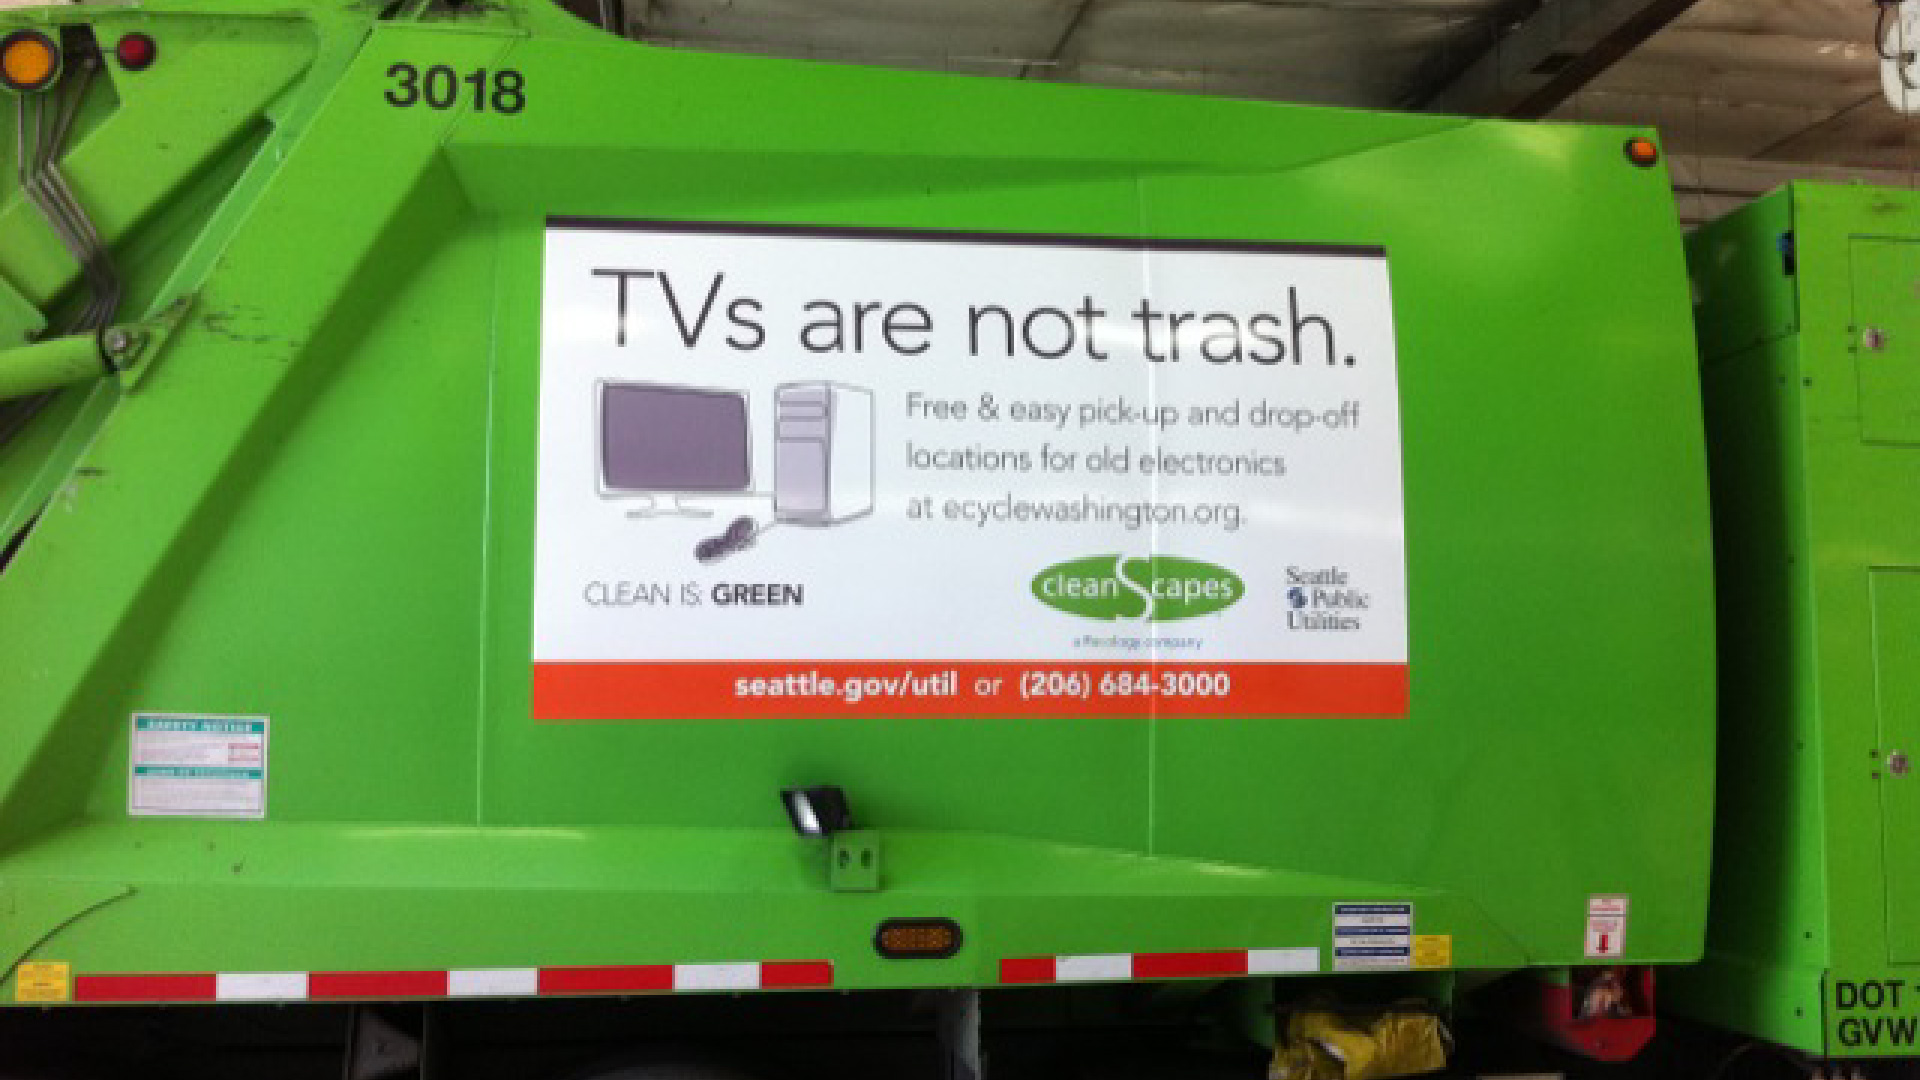 """Close up view of a bright green waste collection truck with a large graphic sign on the site with the headline """"TVs are not trash"""" and an illustration of electronics for recyling."""